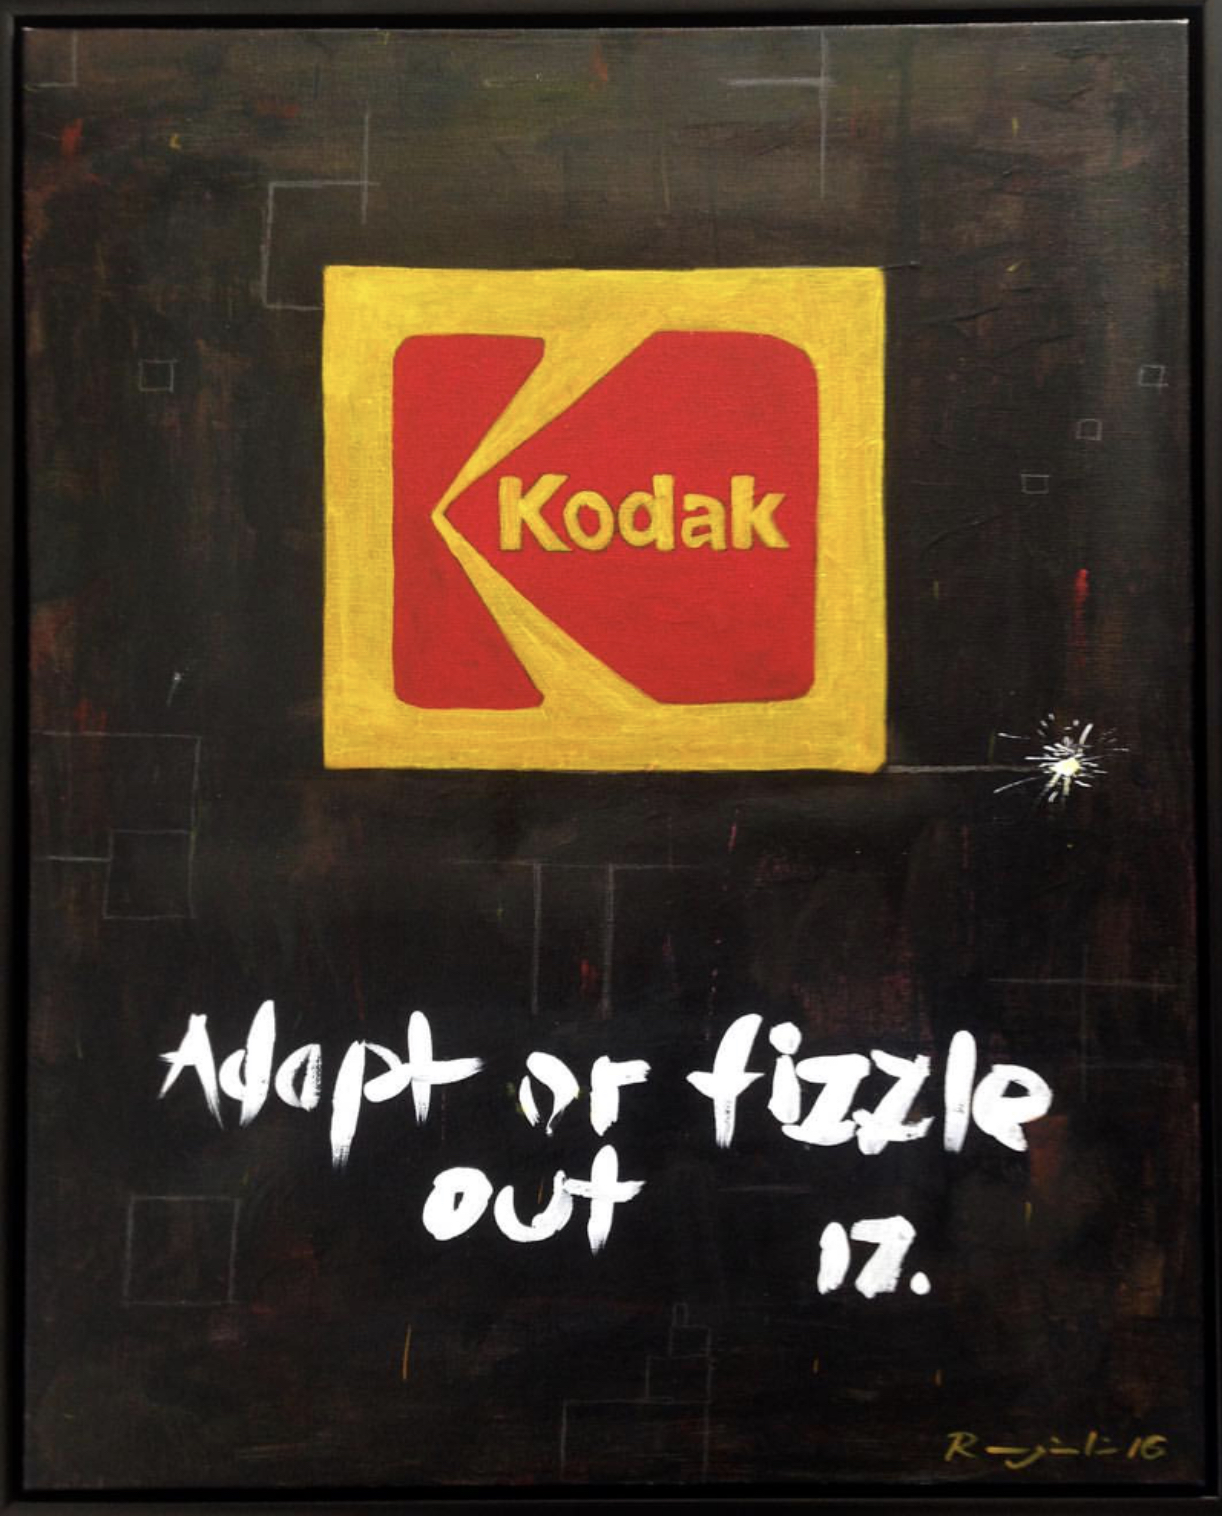 Adapt or fizzle out